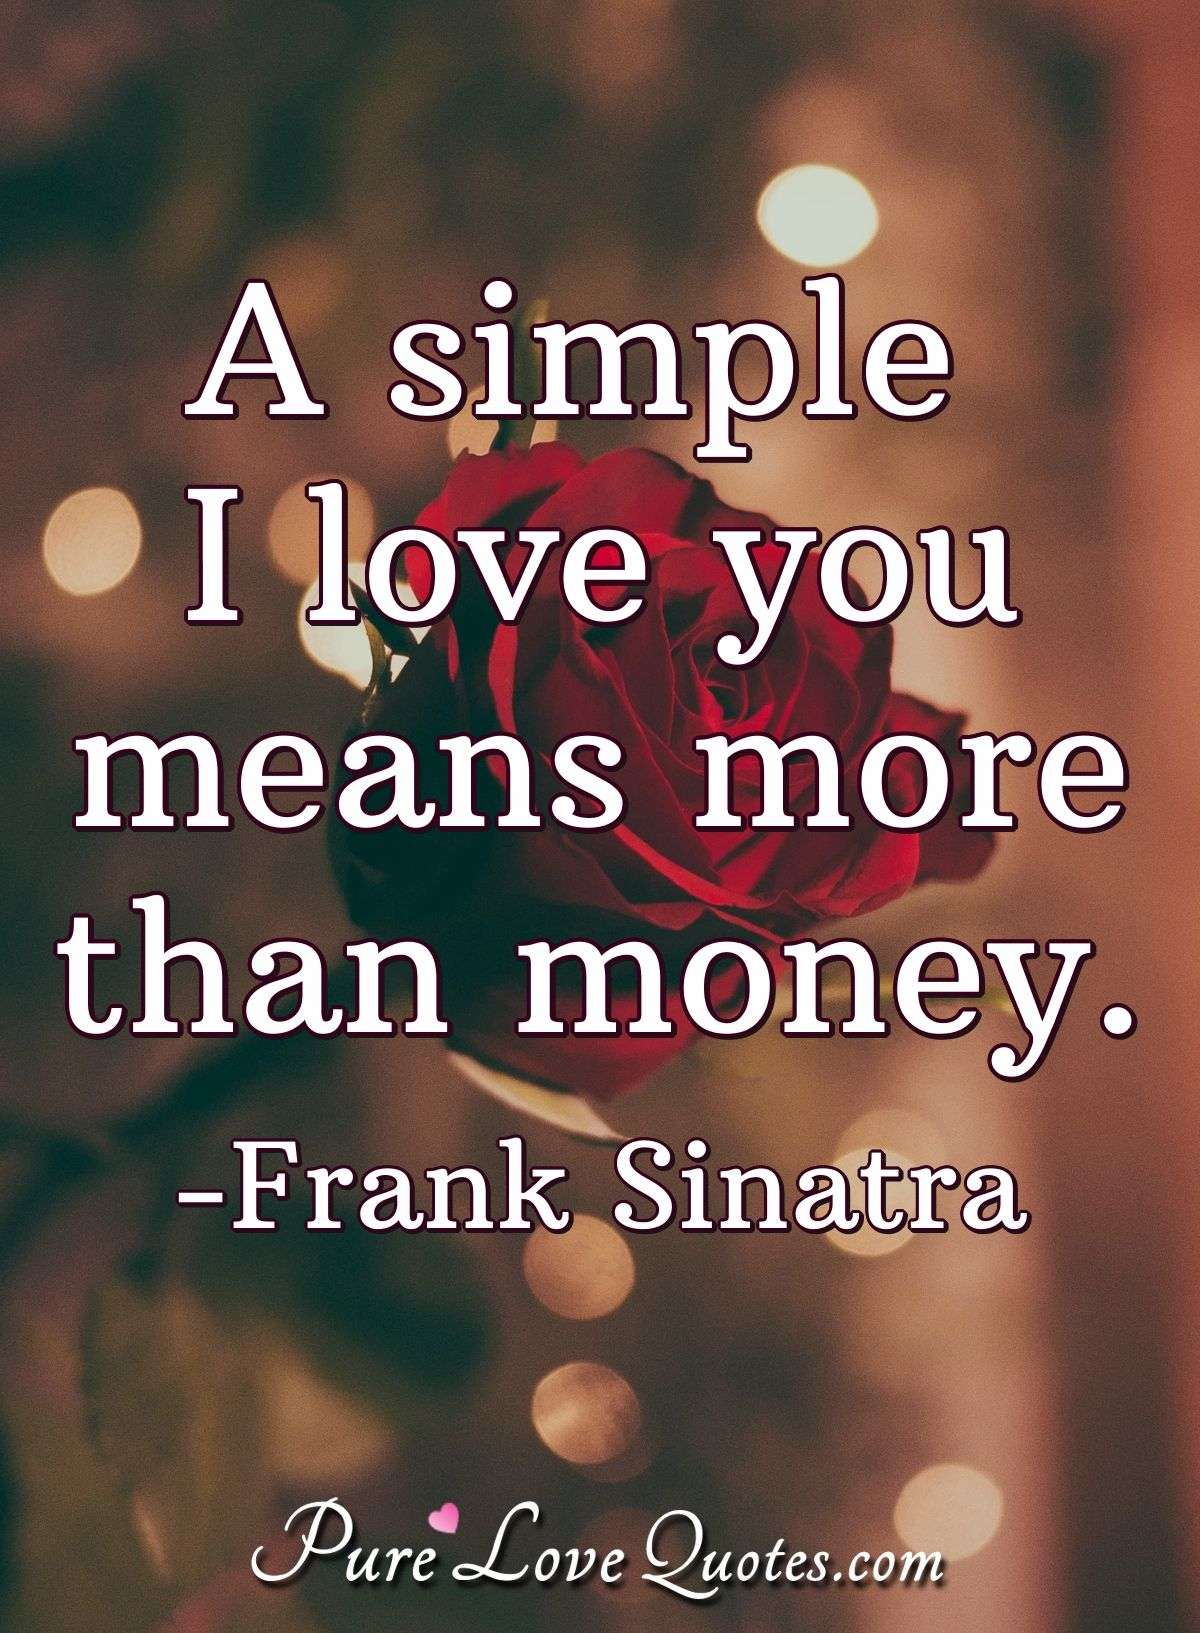 A simple I love you means more than money. - Frank Sinatra